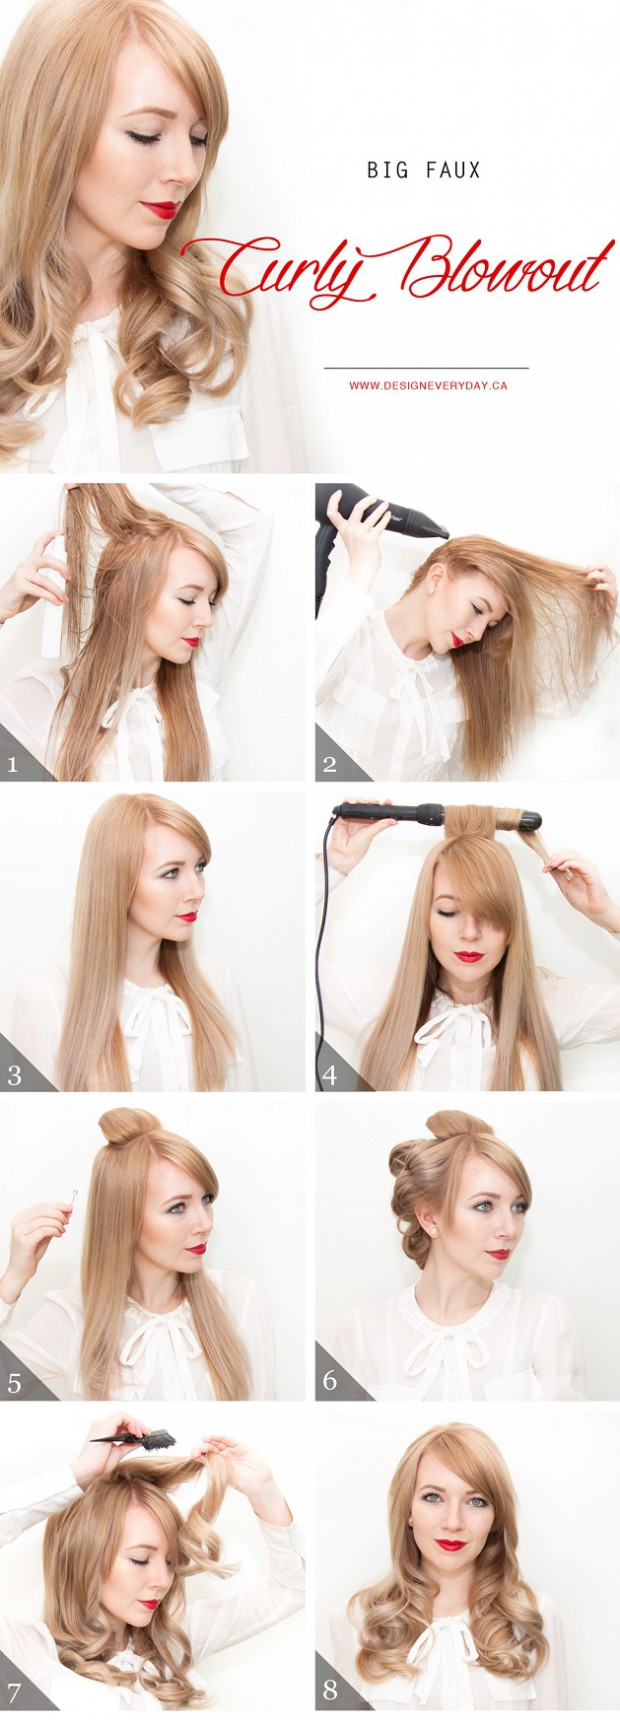 hairstyles (10)